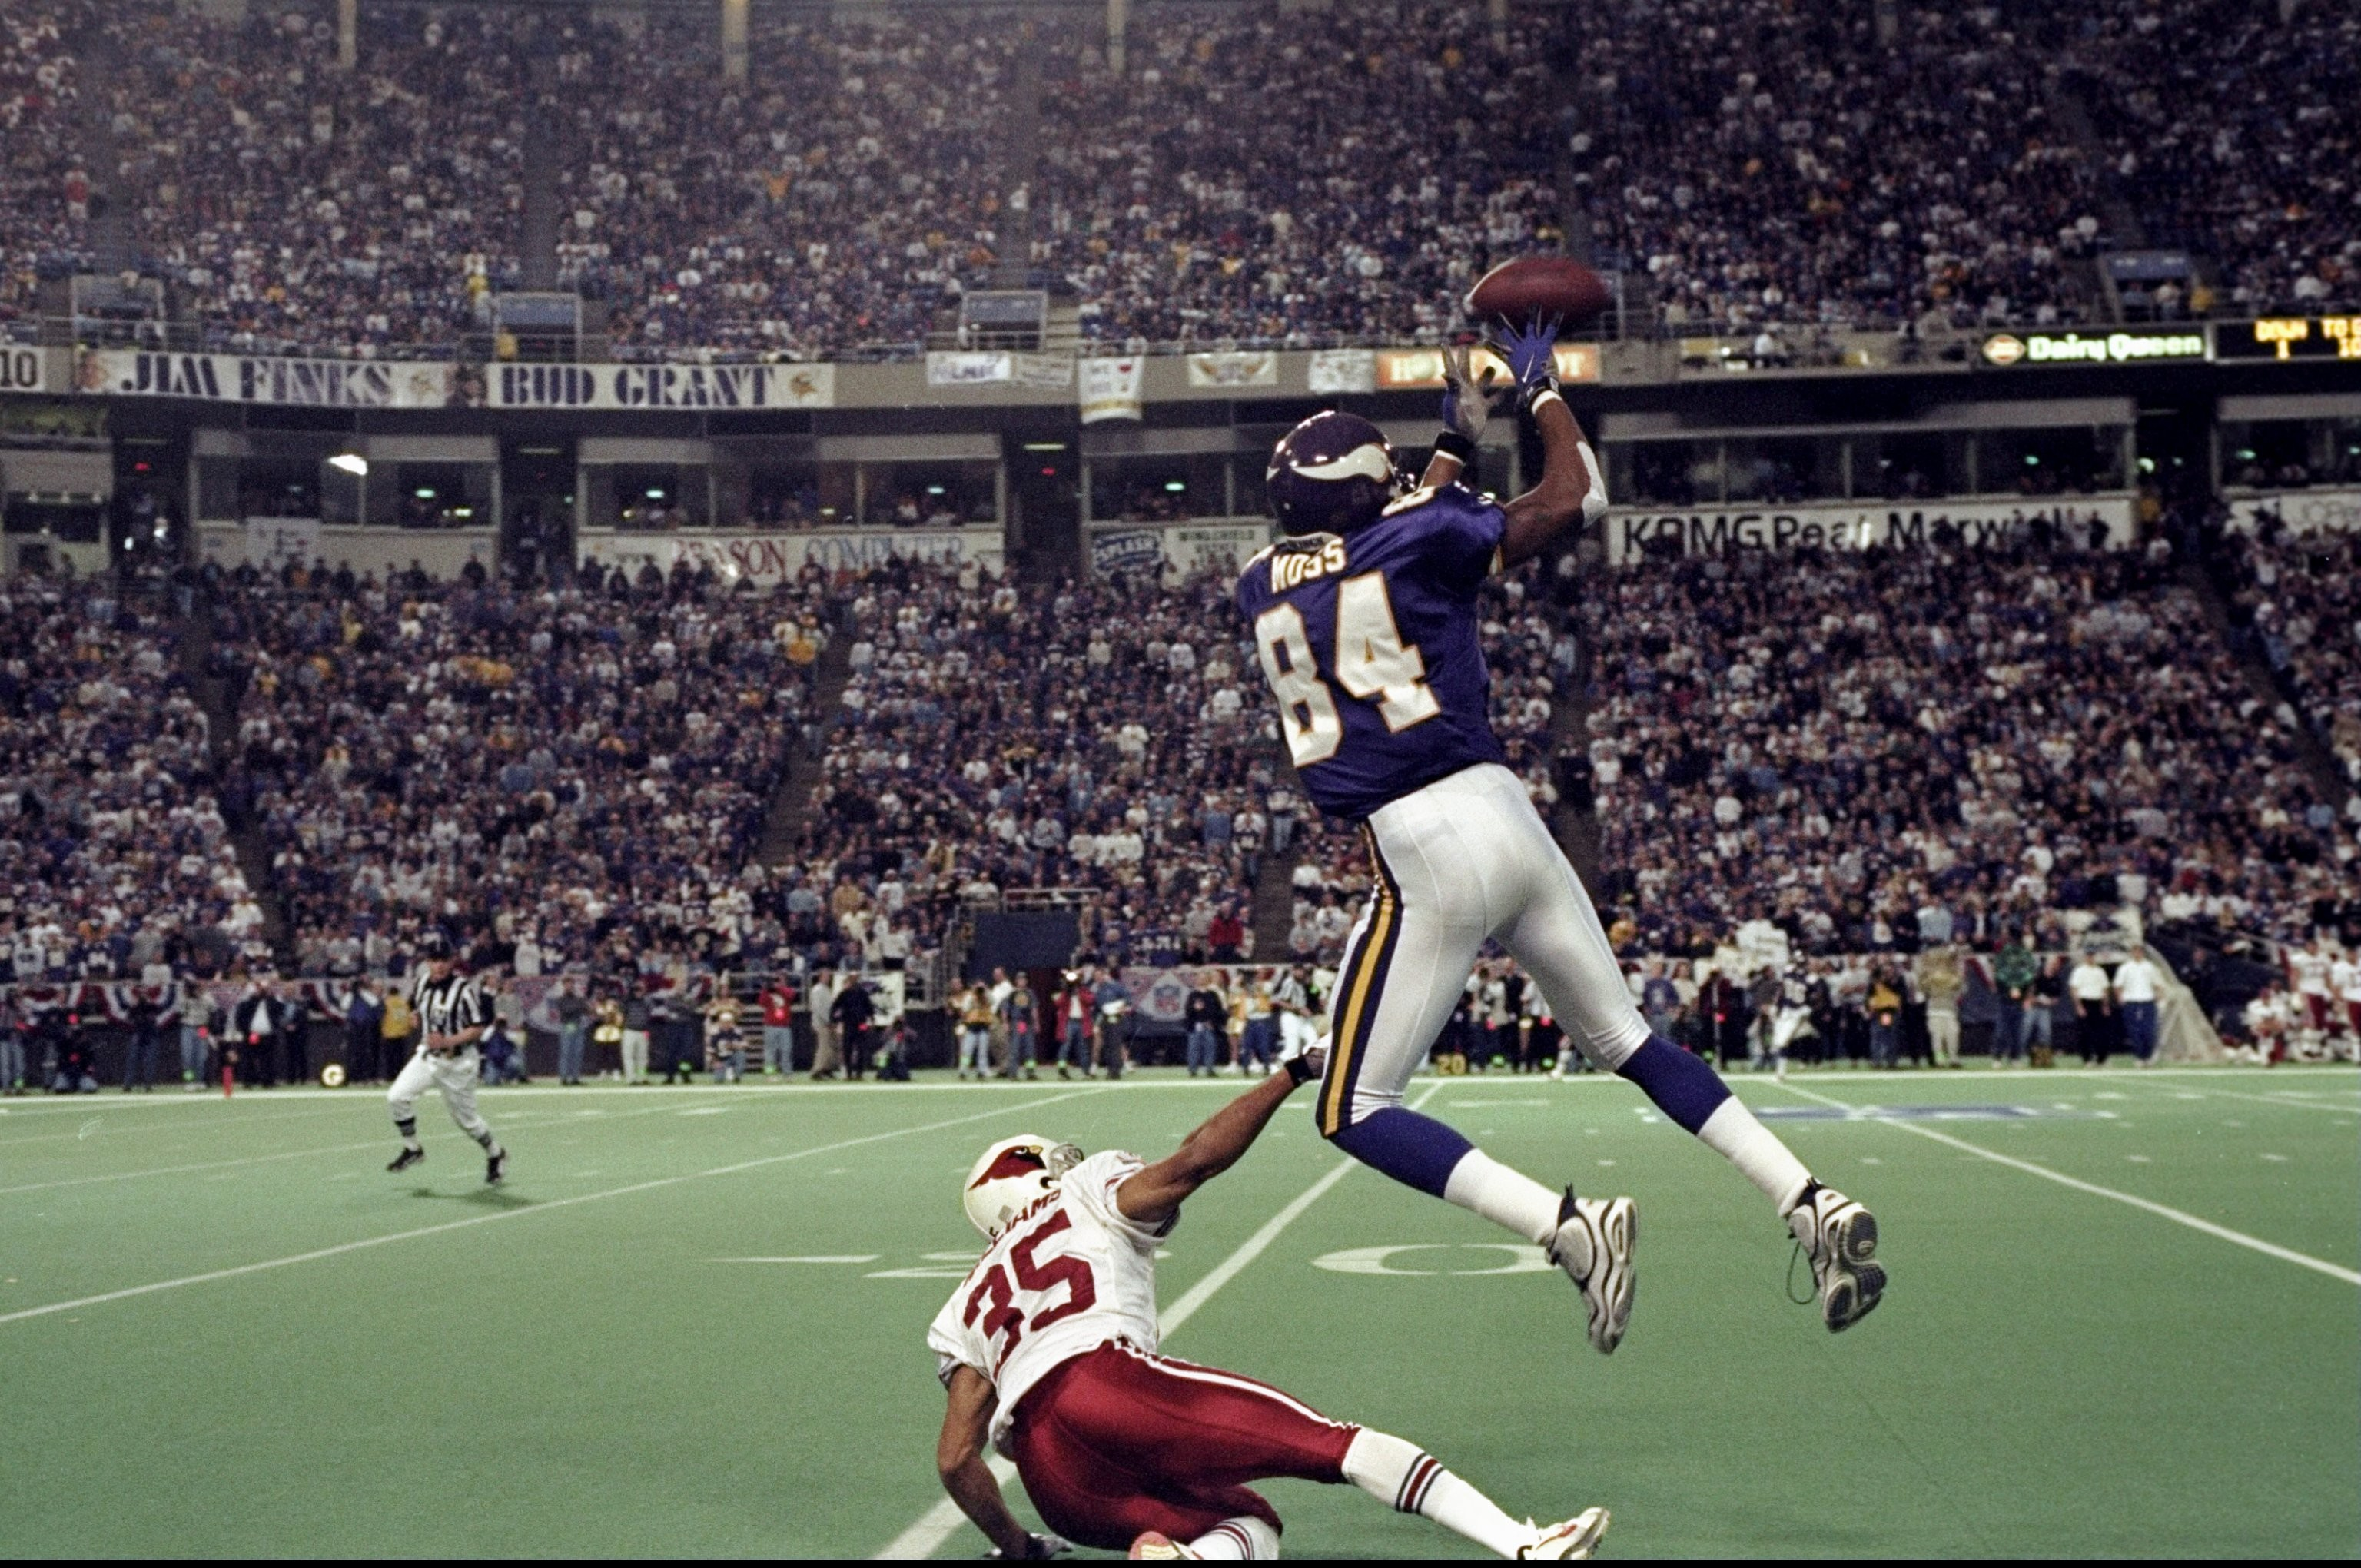 3072x2040 10 Jan 1999: Randy Moss #84 of the Minnesota Vikings goes up for a